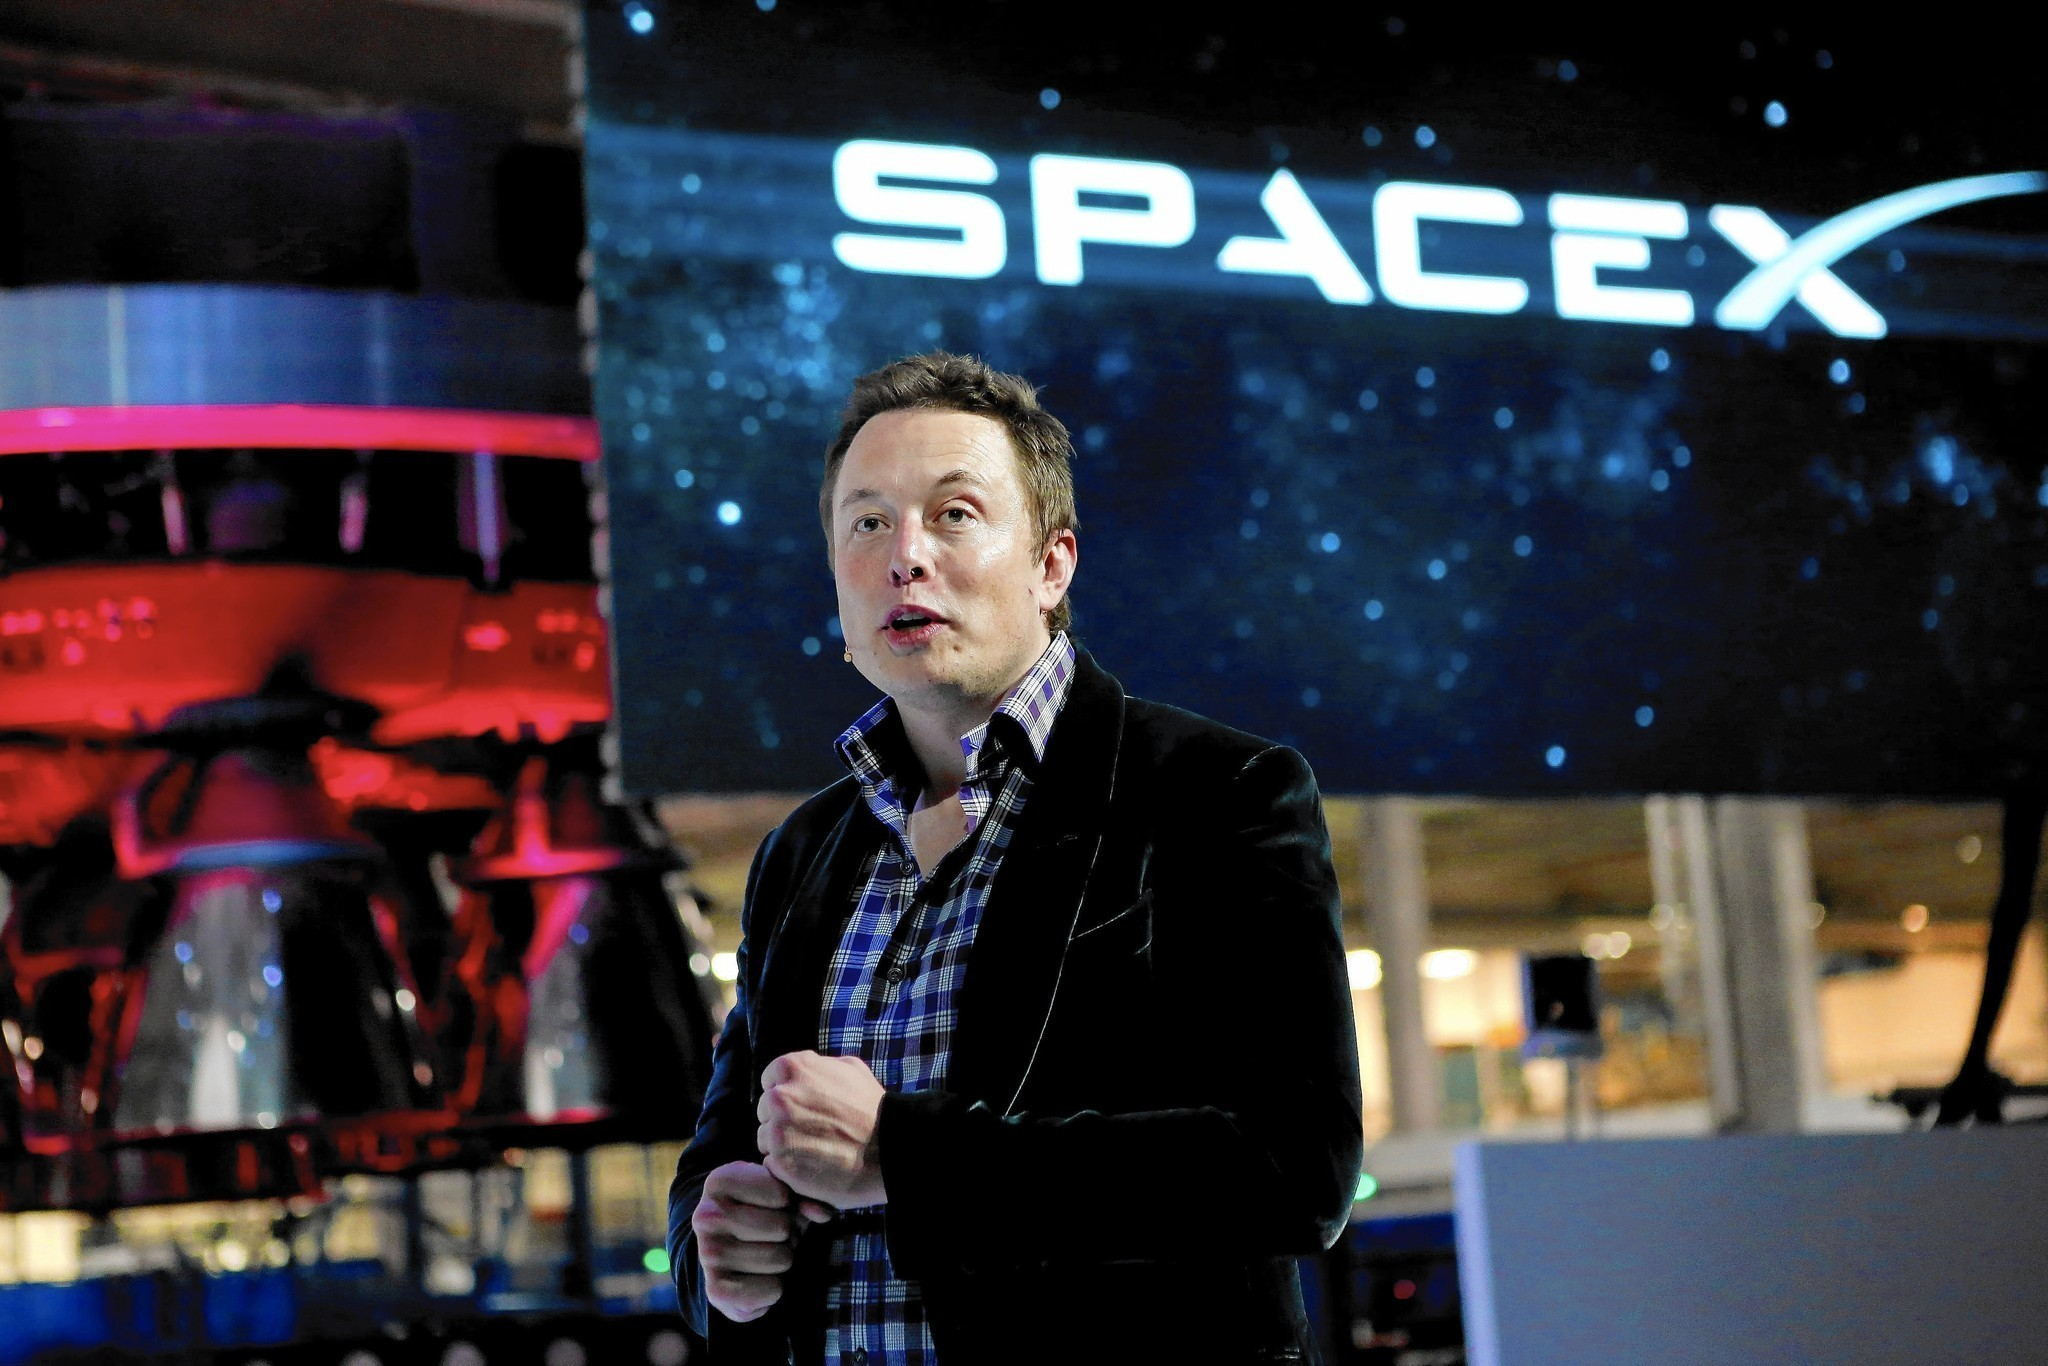 Mars Lover, Mars Lover Elon Musk, 4000 Satellites, 4000 Satellites For Wifi, SpaceX